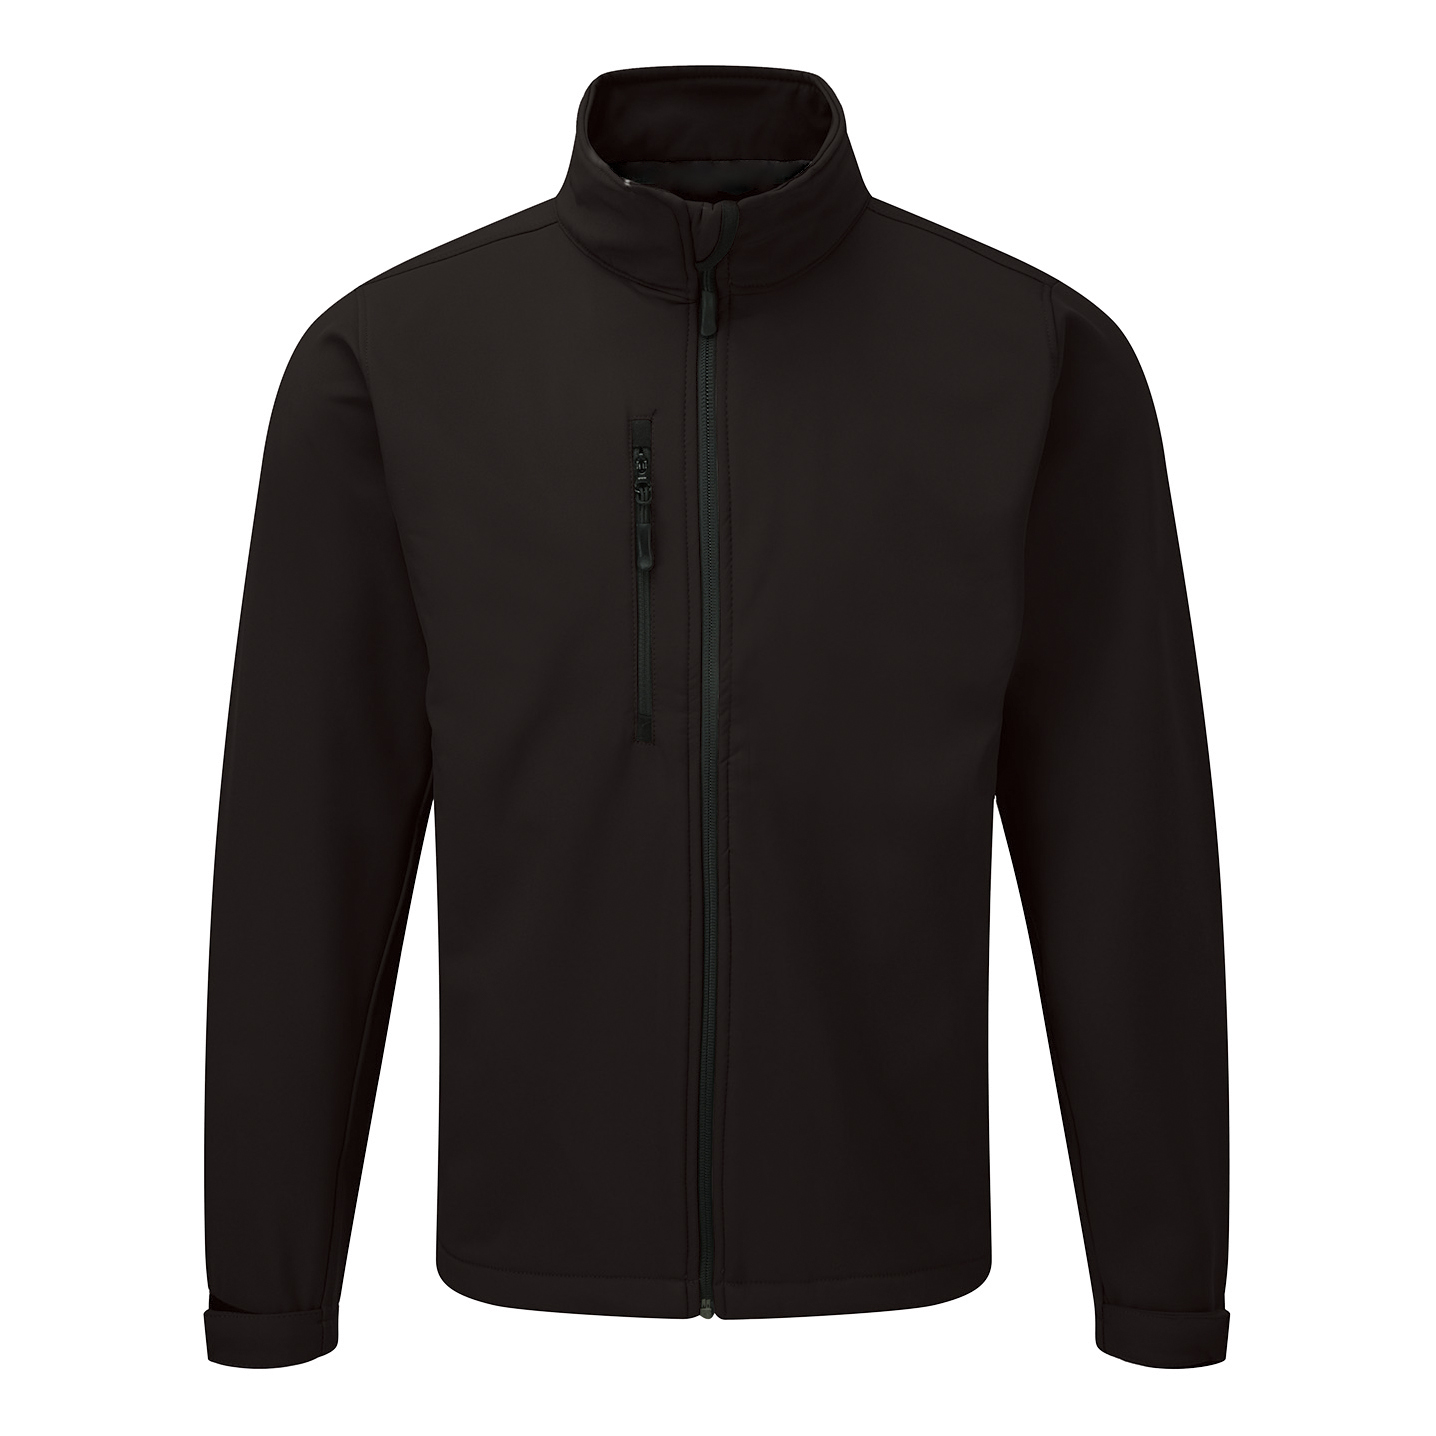 Jacket Soft Shell Water Resistant Breathable 320gsm Small Black